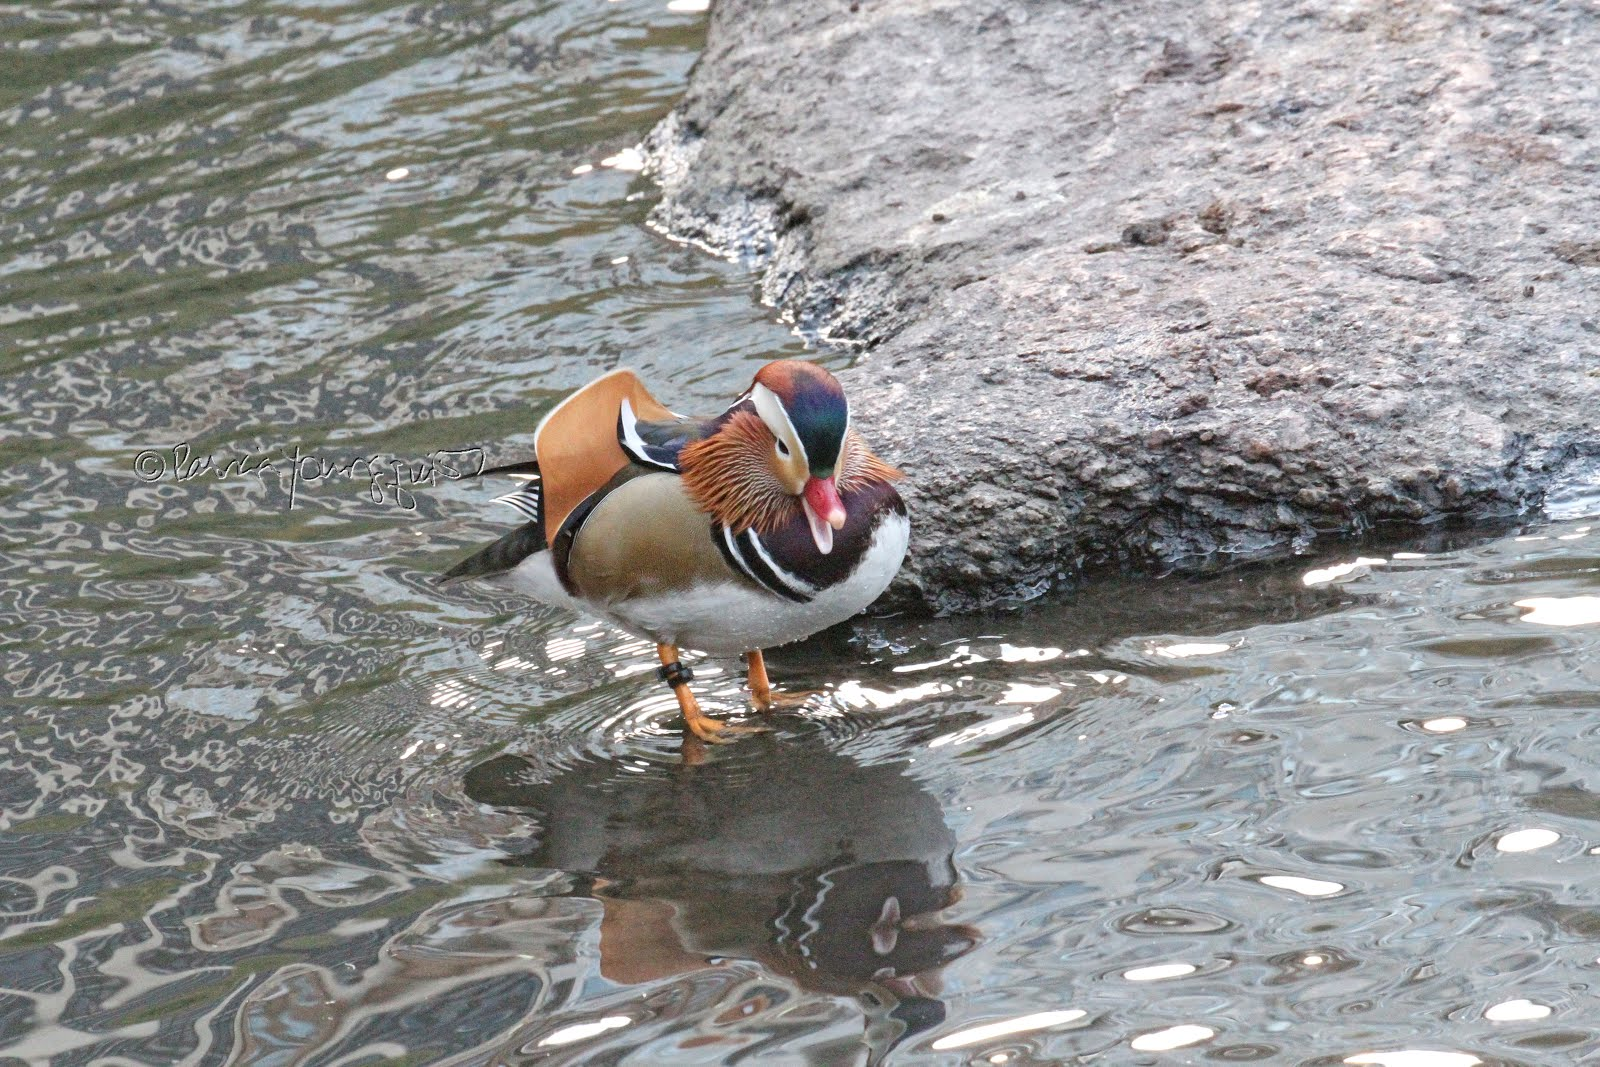 LEARN ABOUT NYC's MANDARIN DUCK + PURCHASE HIS IMAGES